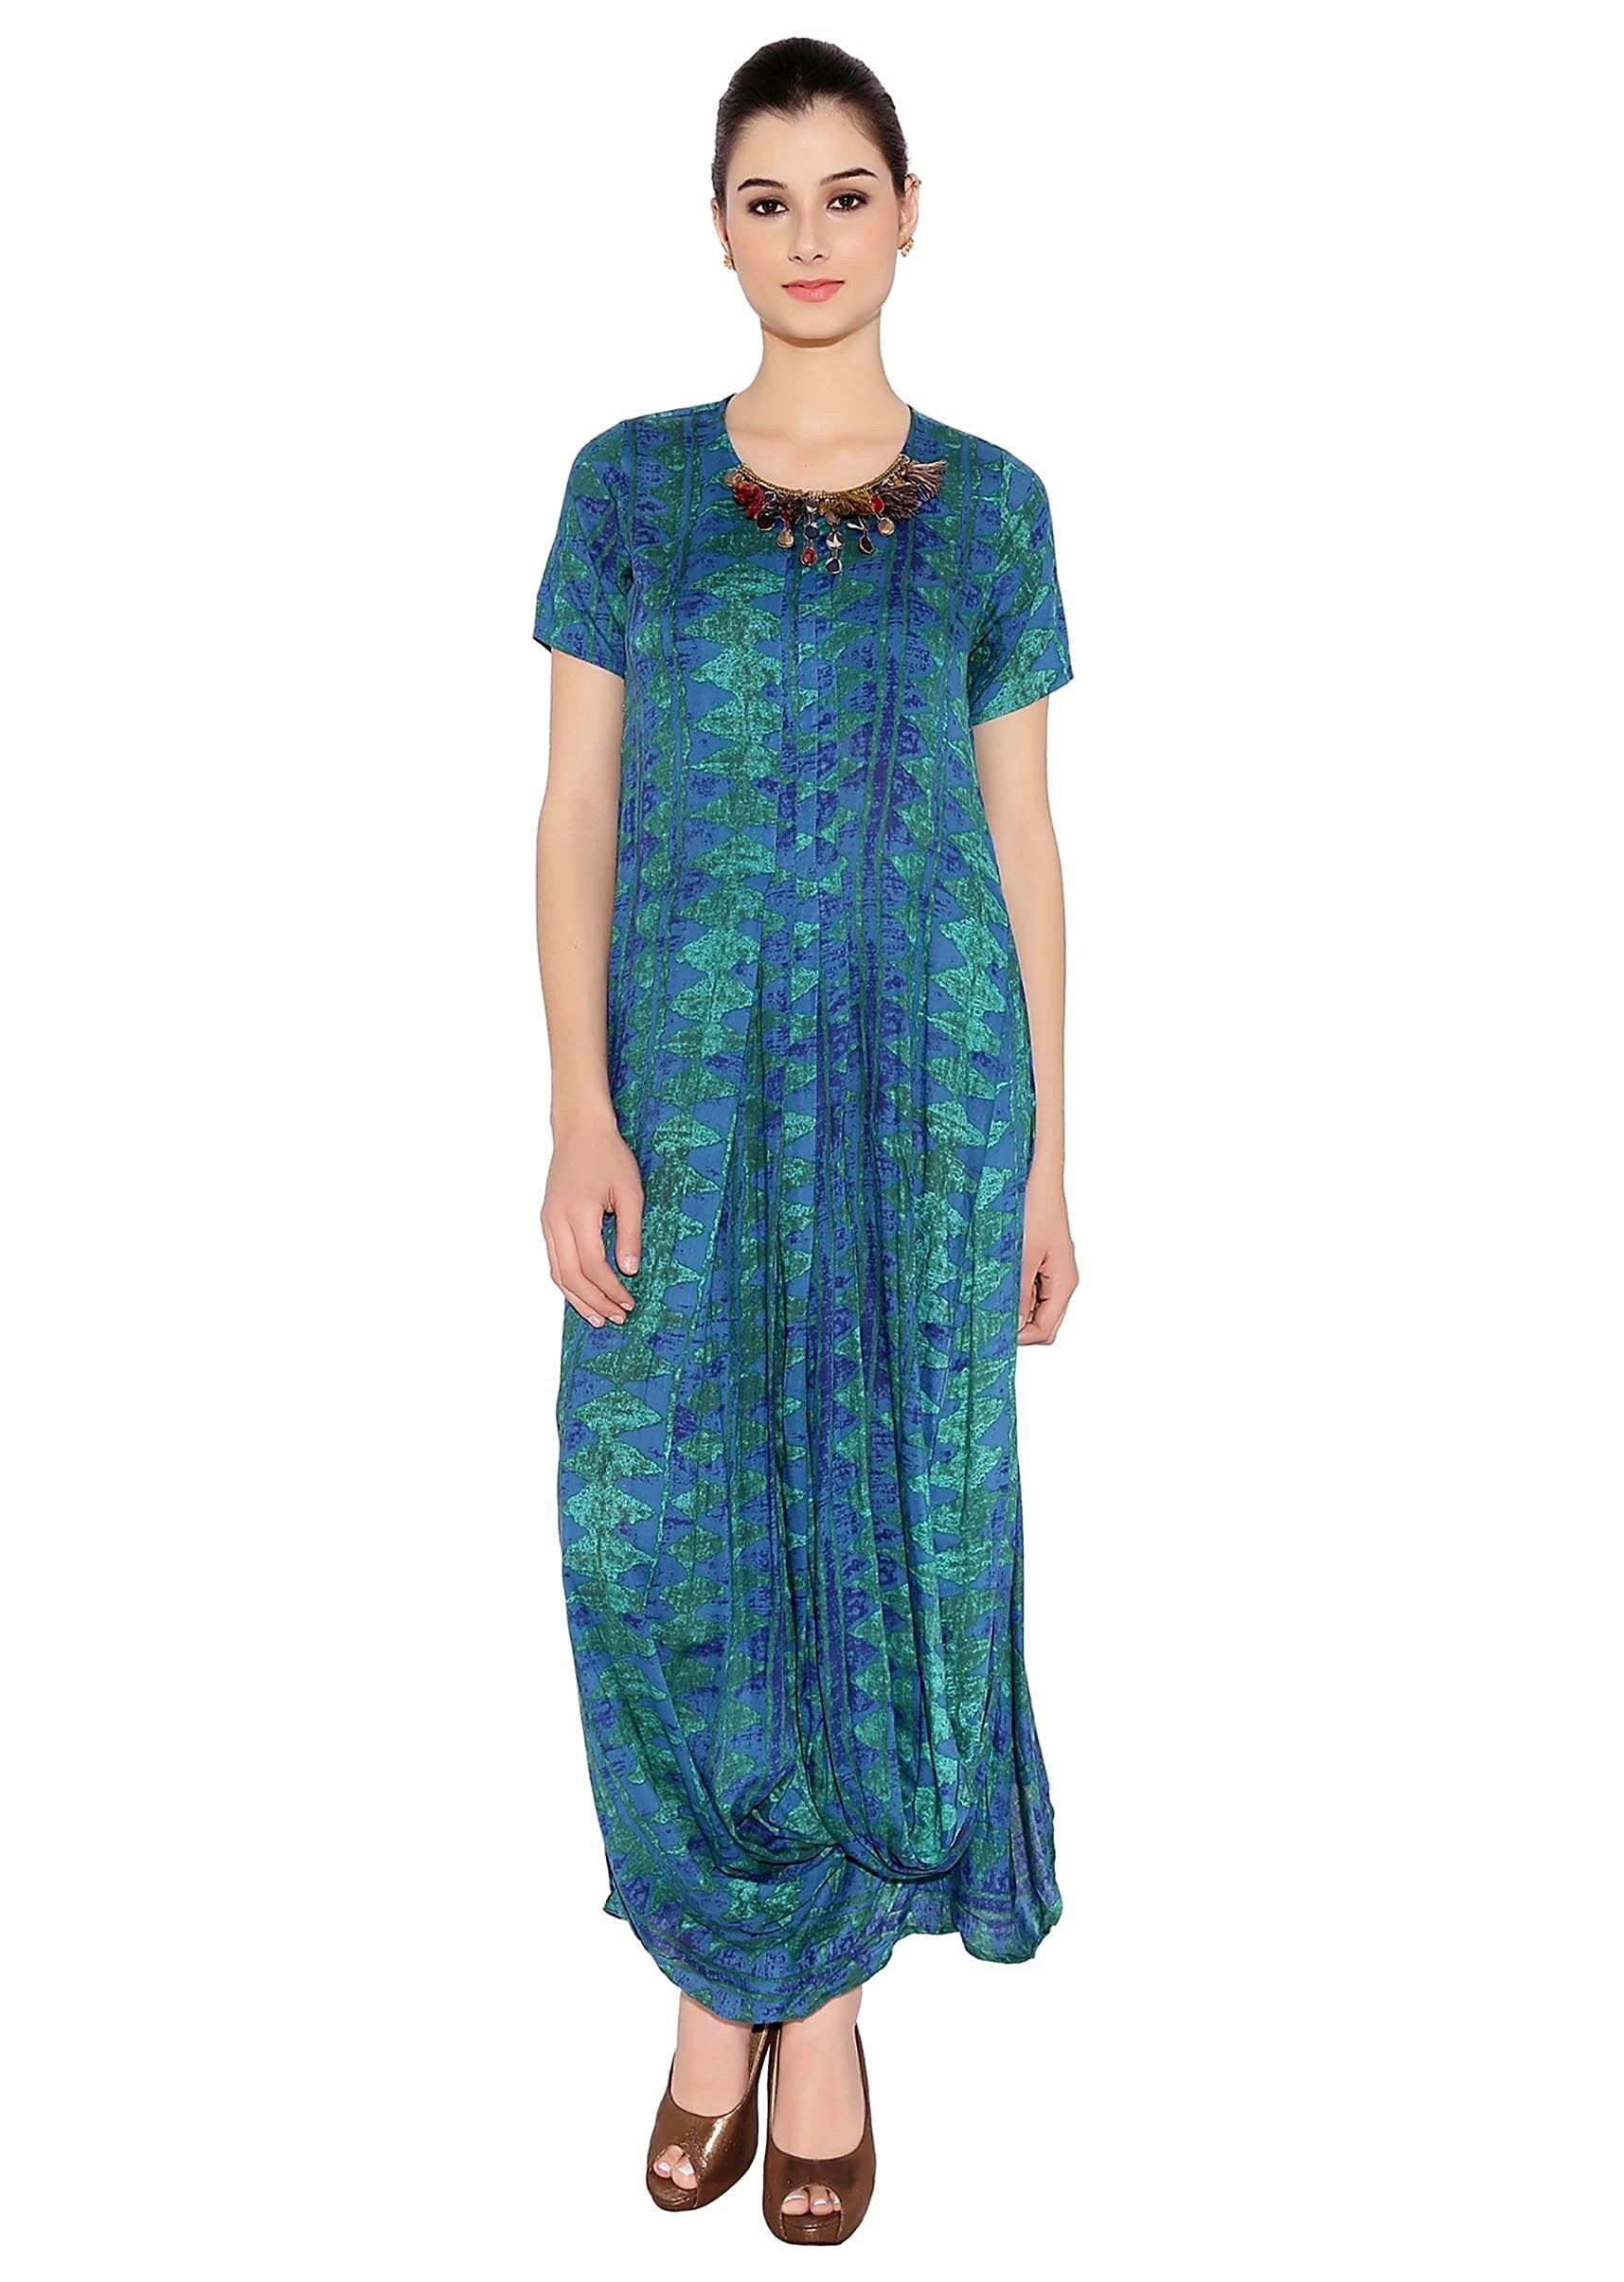 b54fccb662f62 Peacock Blue Cotton Kurti With Maxi Style And All Over Print And  Embellished Neckline Only On KalkiMore Detail